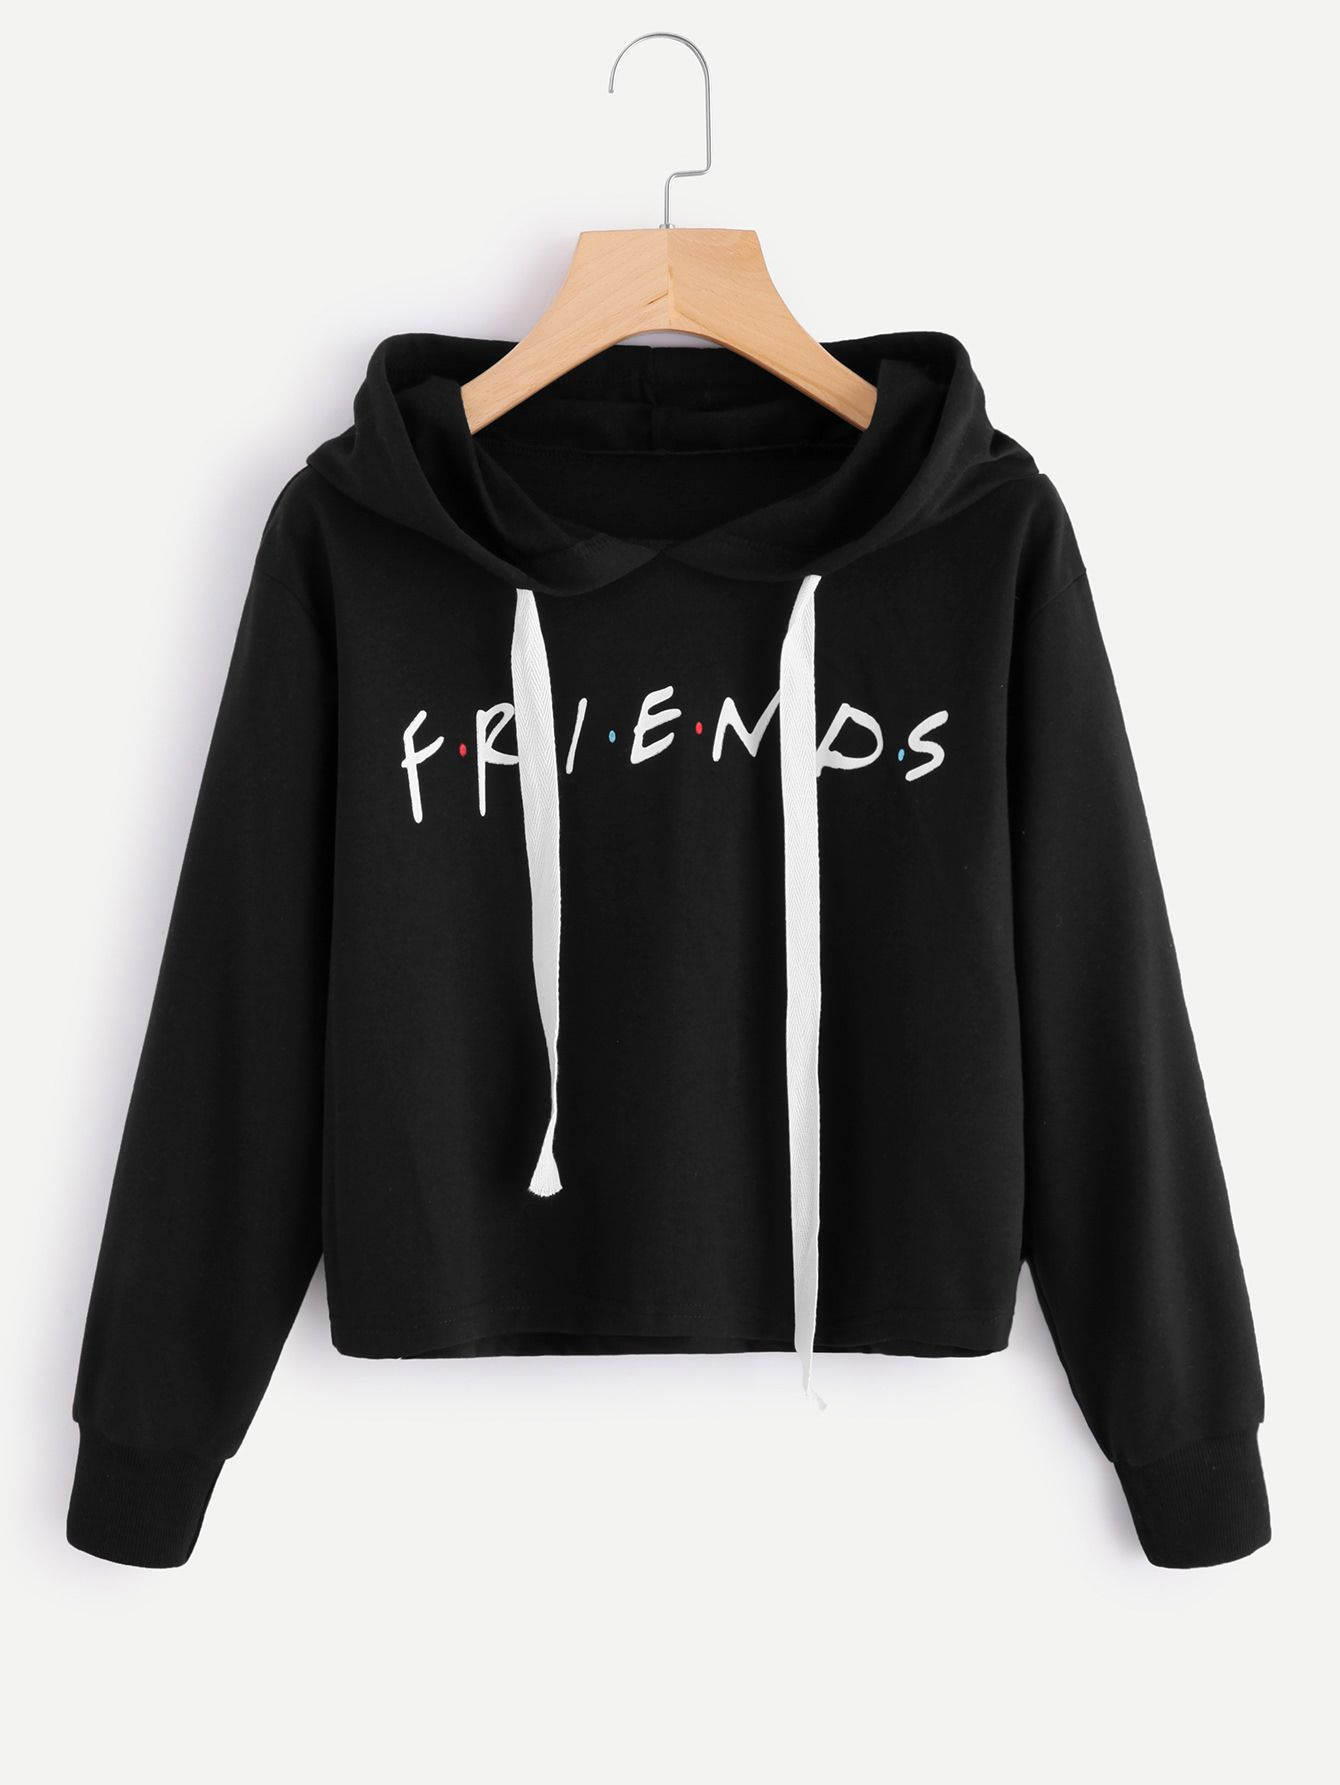 05c15d0a07 Shop Friends Print Drop Shoulder Raw Hem Hoodie online. SheIn offers  Friends Print Drop Shoulder Raw Hem Hoodie & more to fit your fashionable  needs.